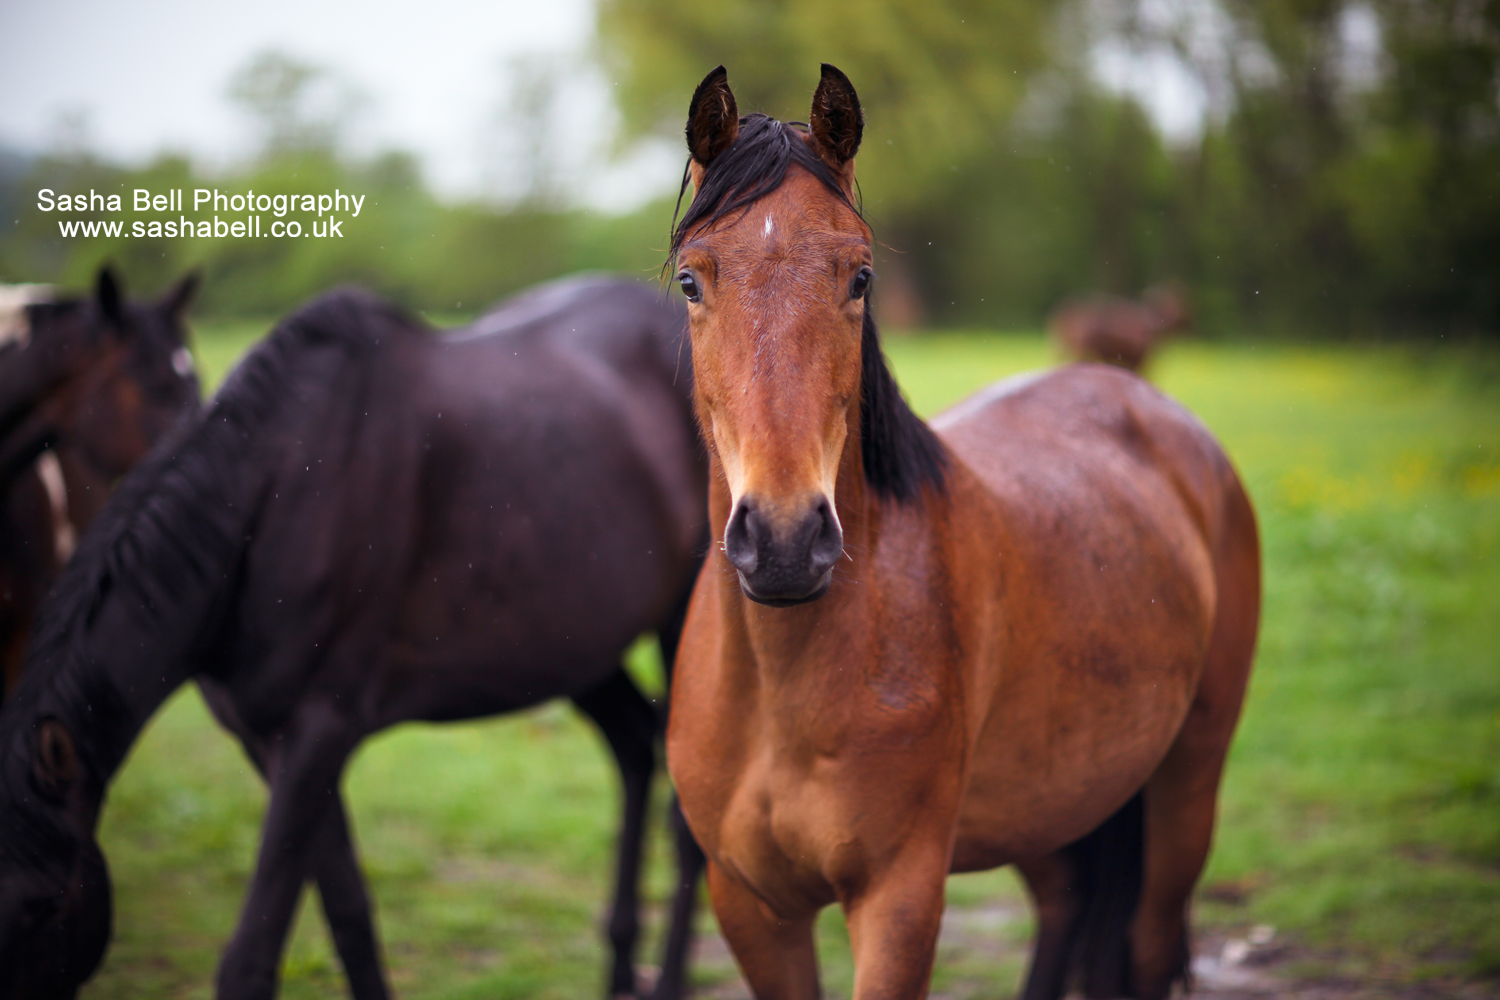 Horses In the Rain – Day 249/365